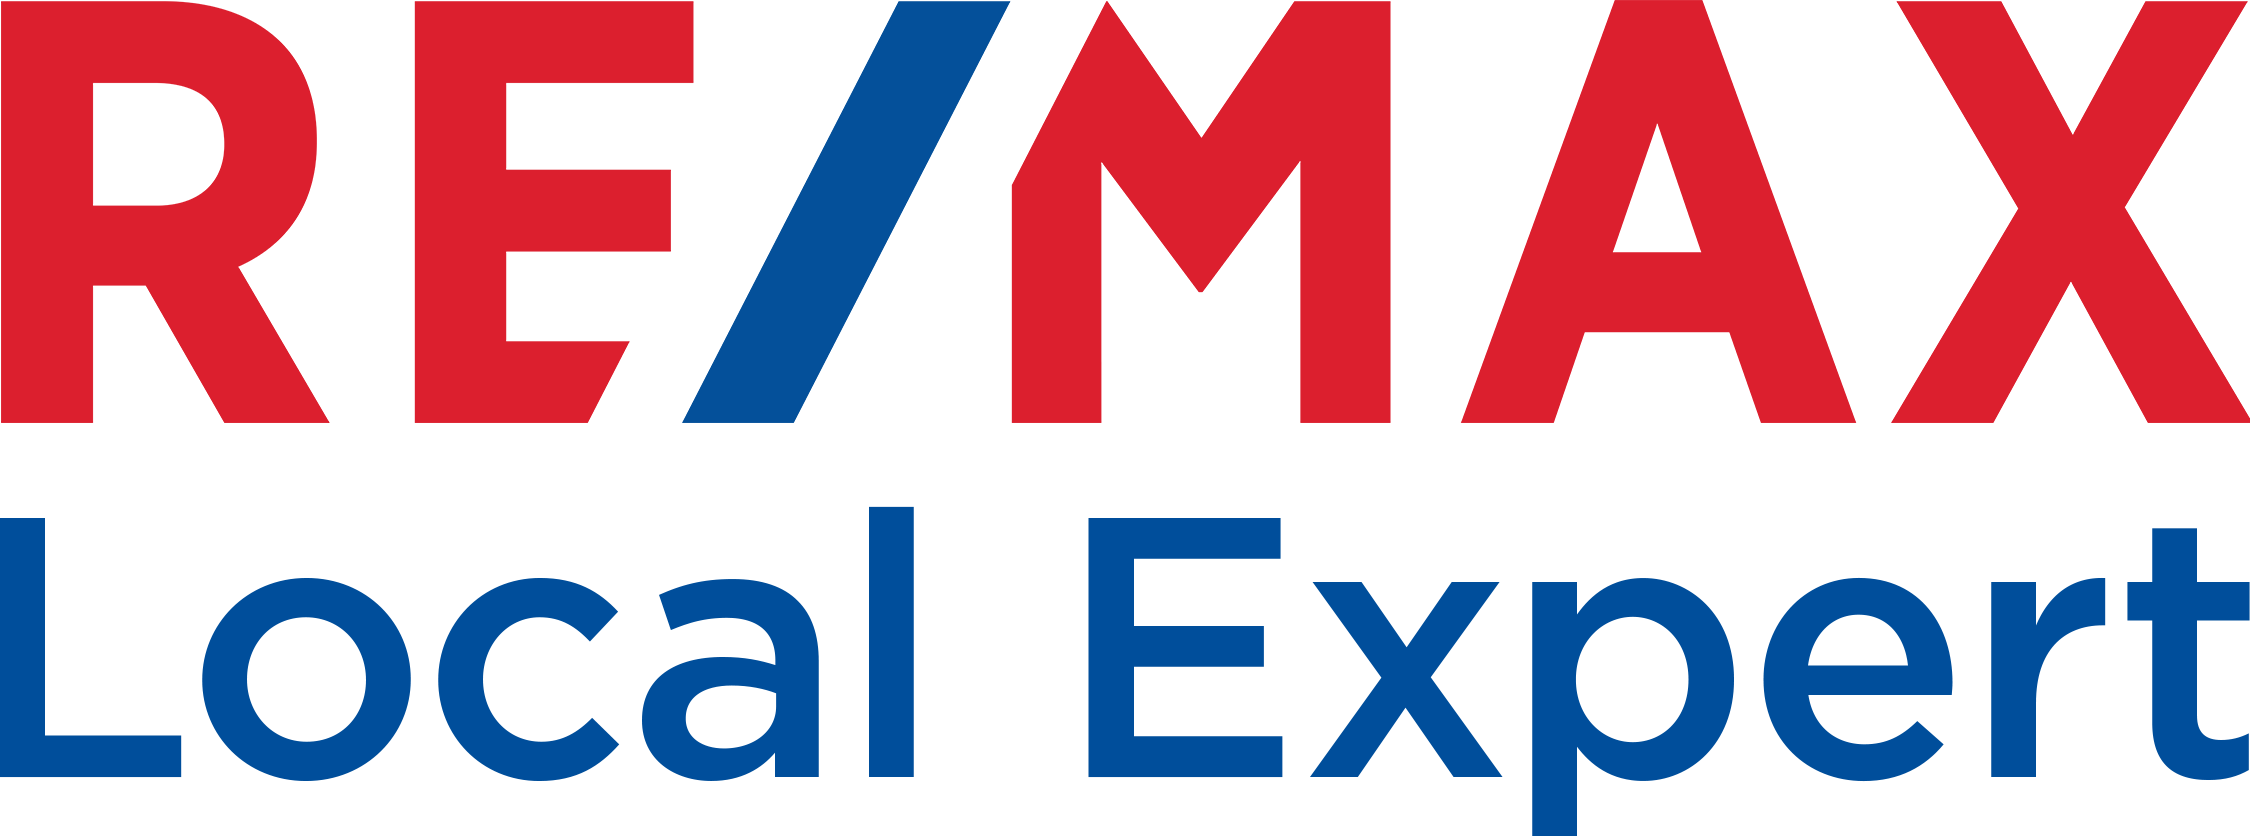 RE/MAX Local Expert